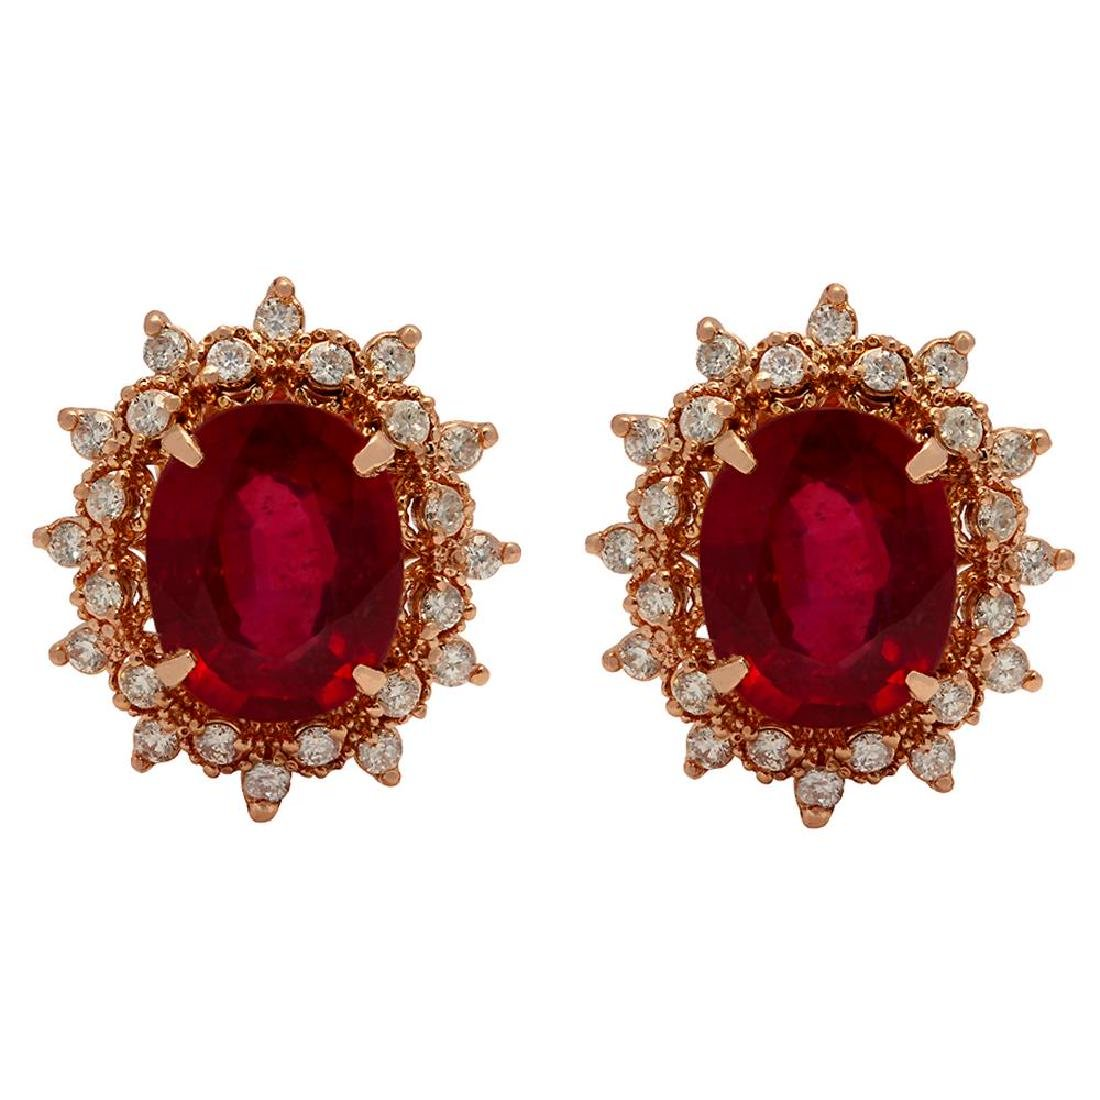 14k Rose Gold 7.86ct Ruby 1.36ct Diamond Earrings